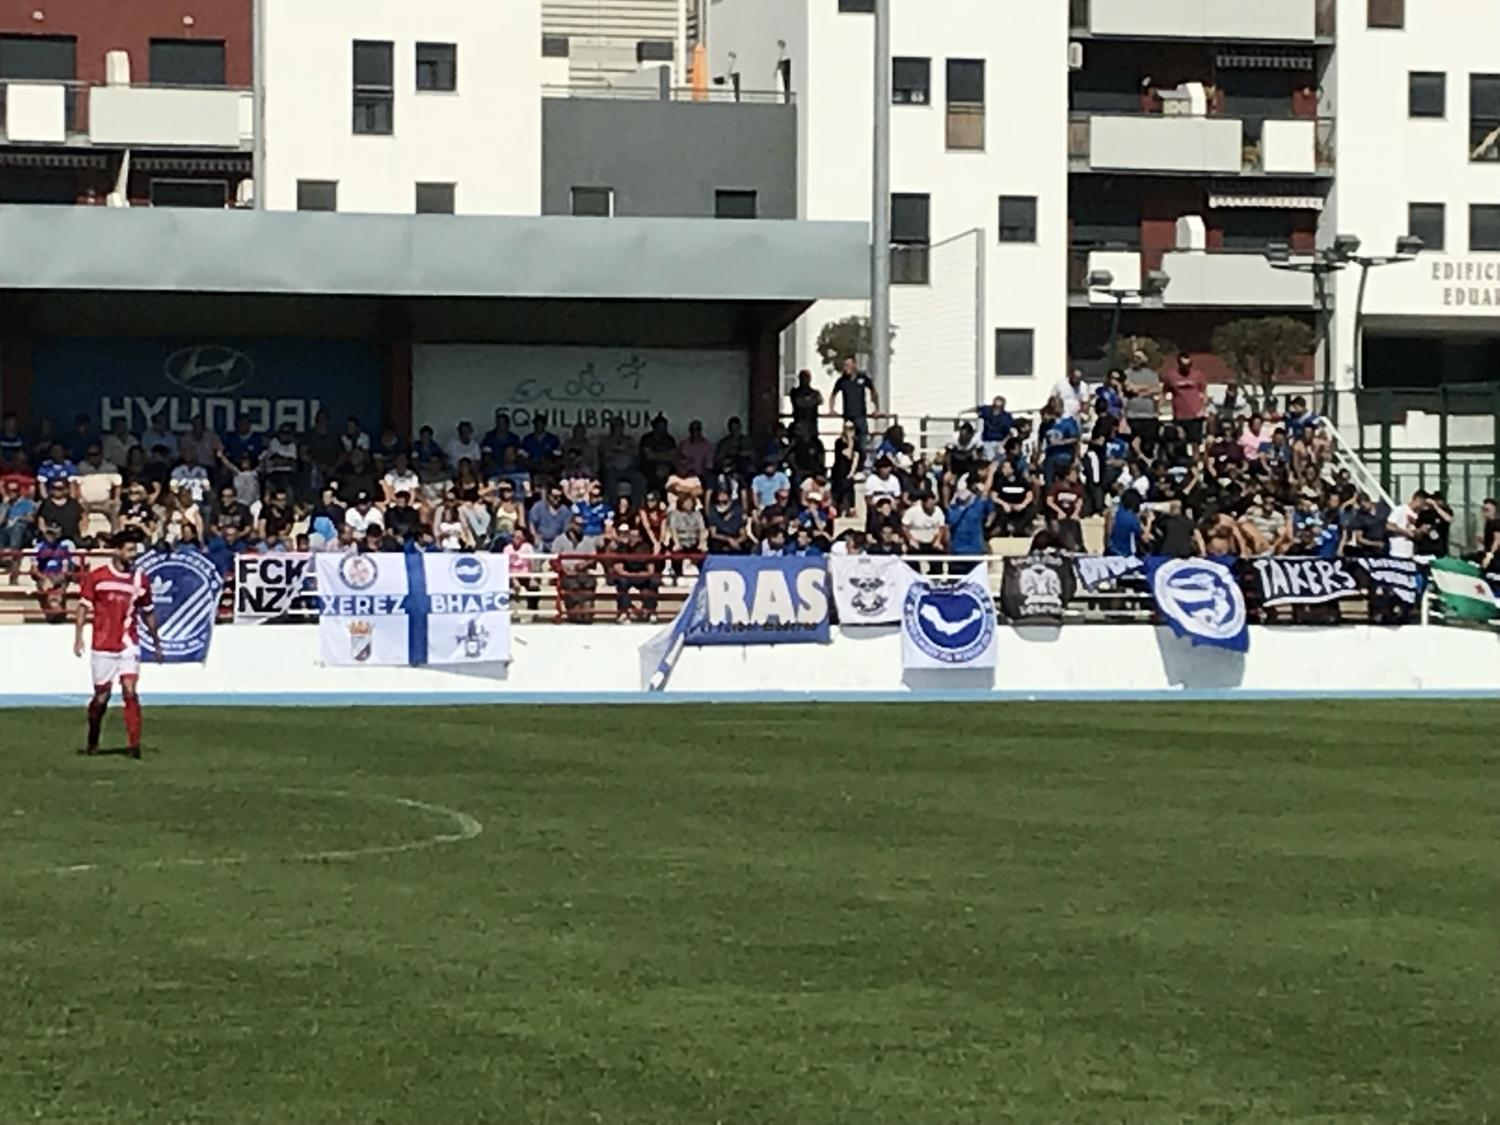 AVANCE: CD San Roque 0 - Xerez Deportivo FC 1 (VIDEO)